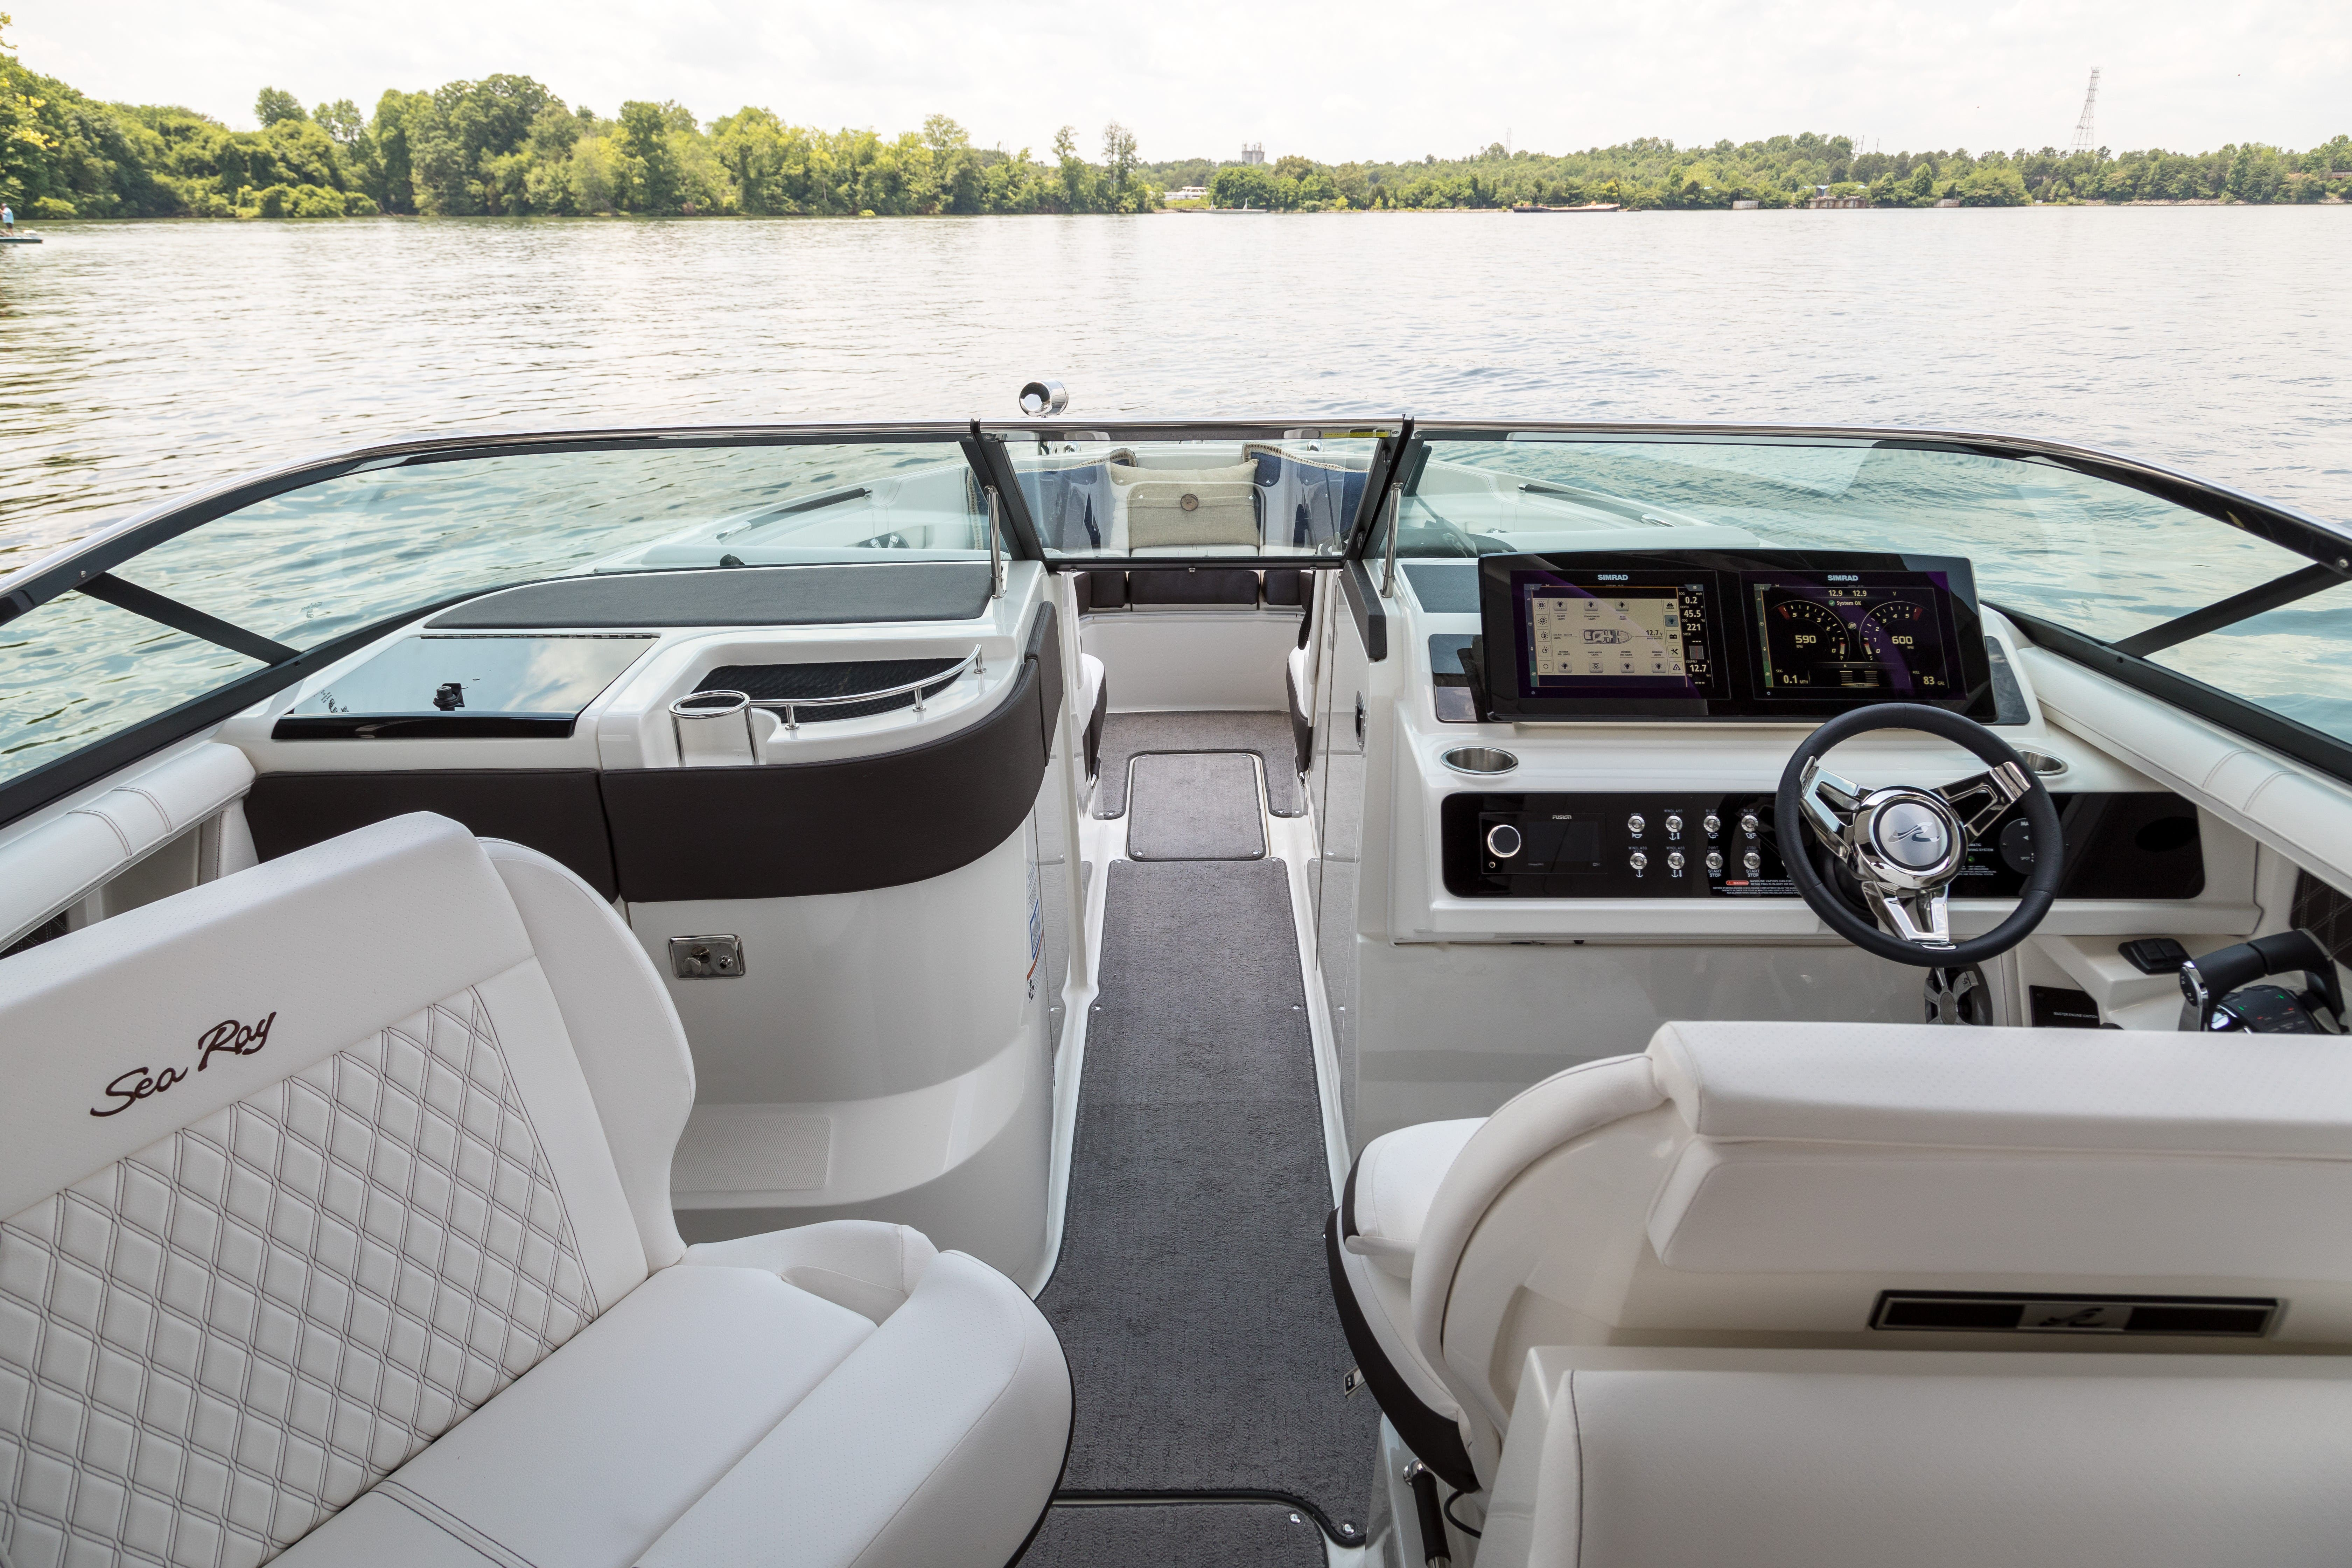 2022 Sea Ray boat for sale, model of the boat is 310slx & Image # 3 of 6